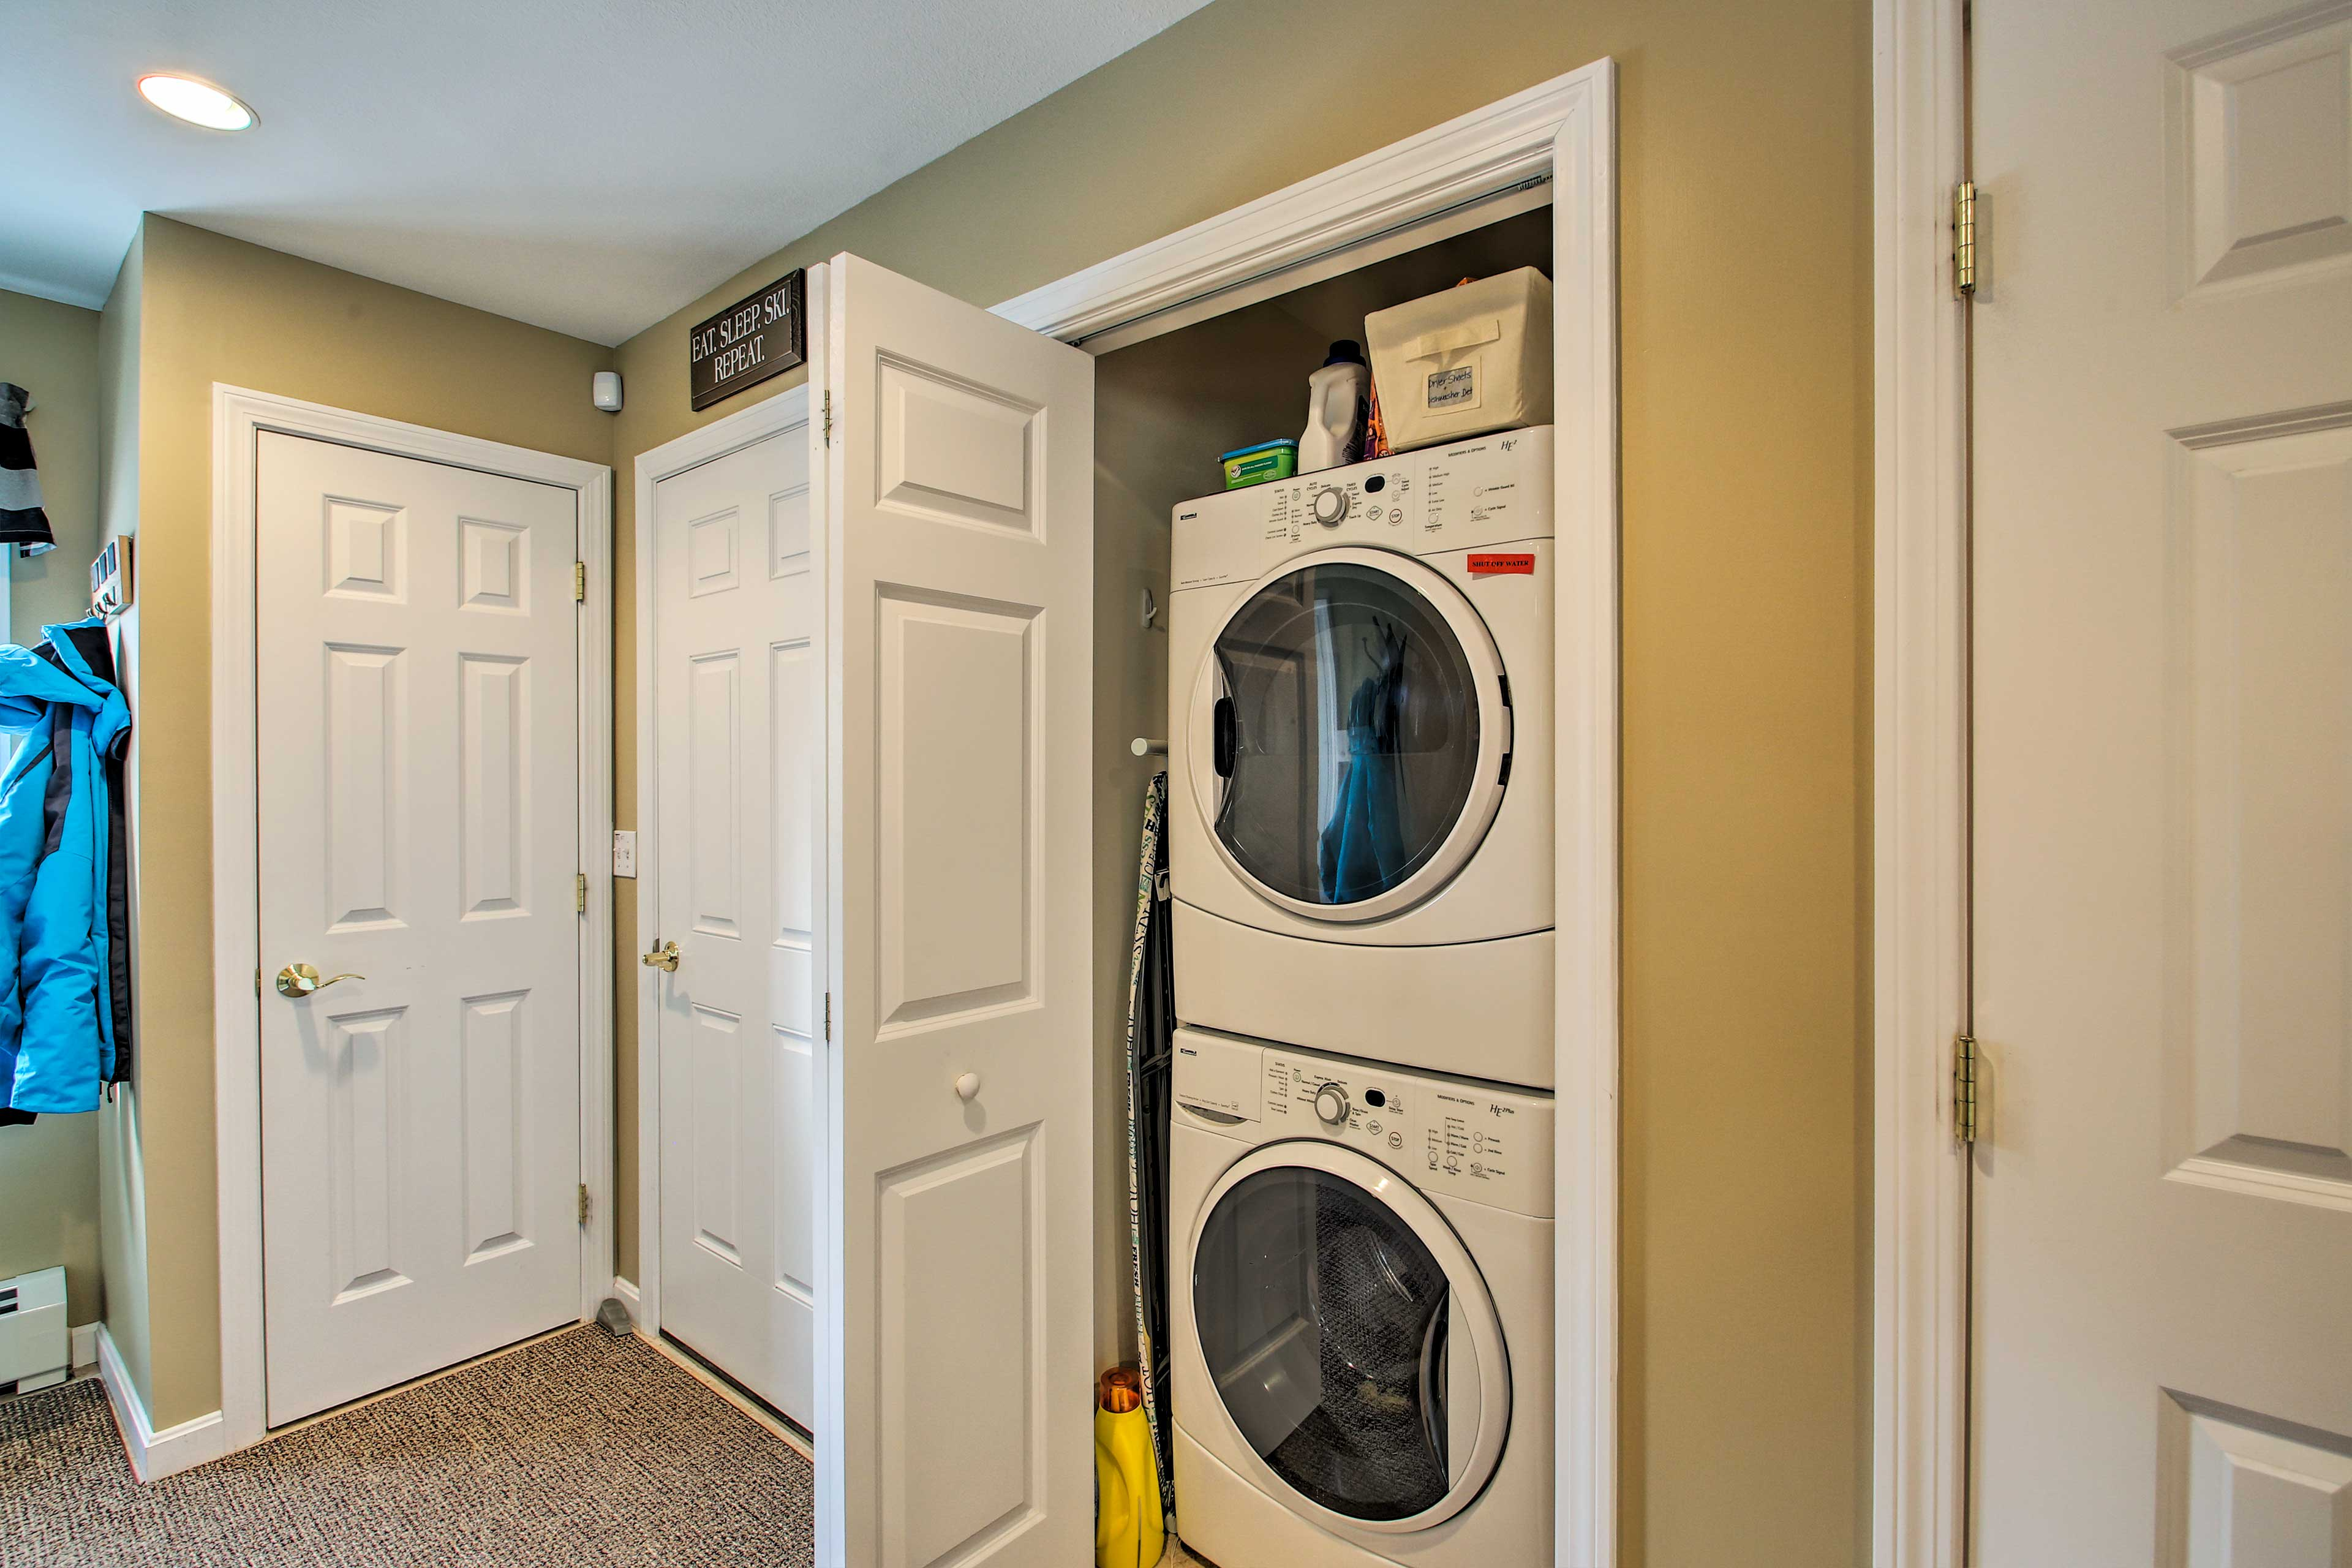 Freshen up your wardrobe with the home's laundry machines.